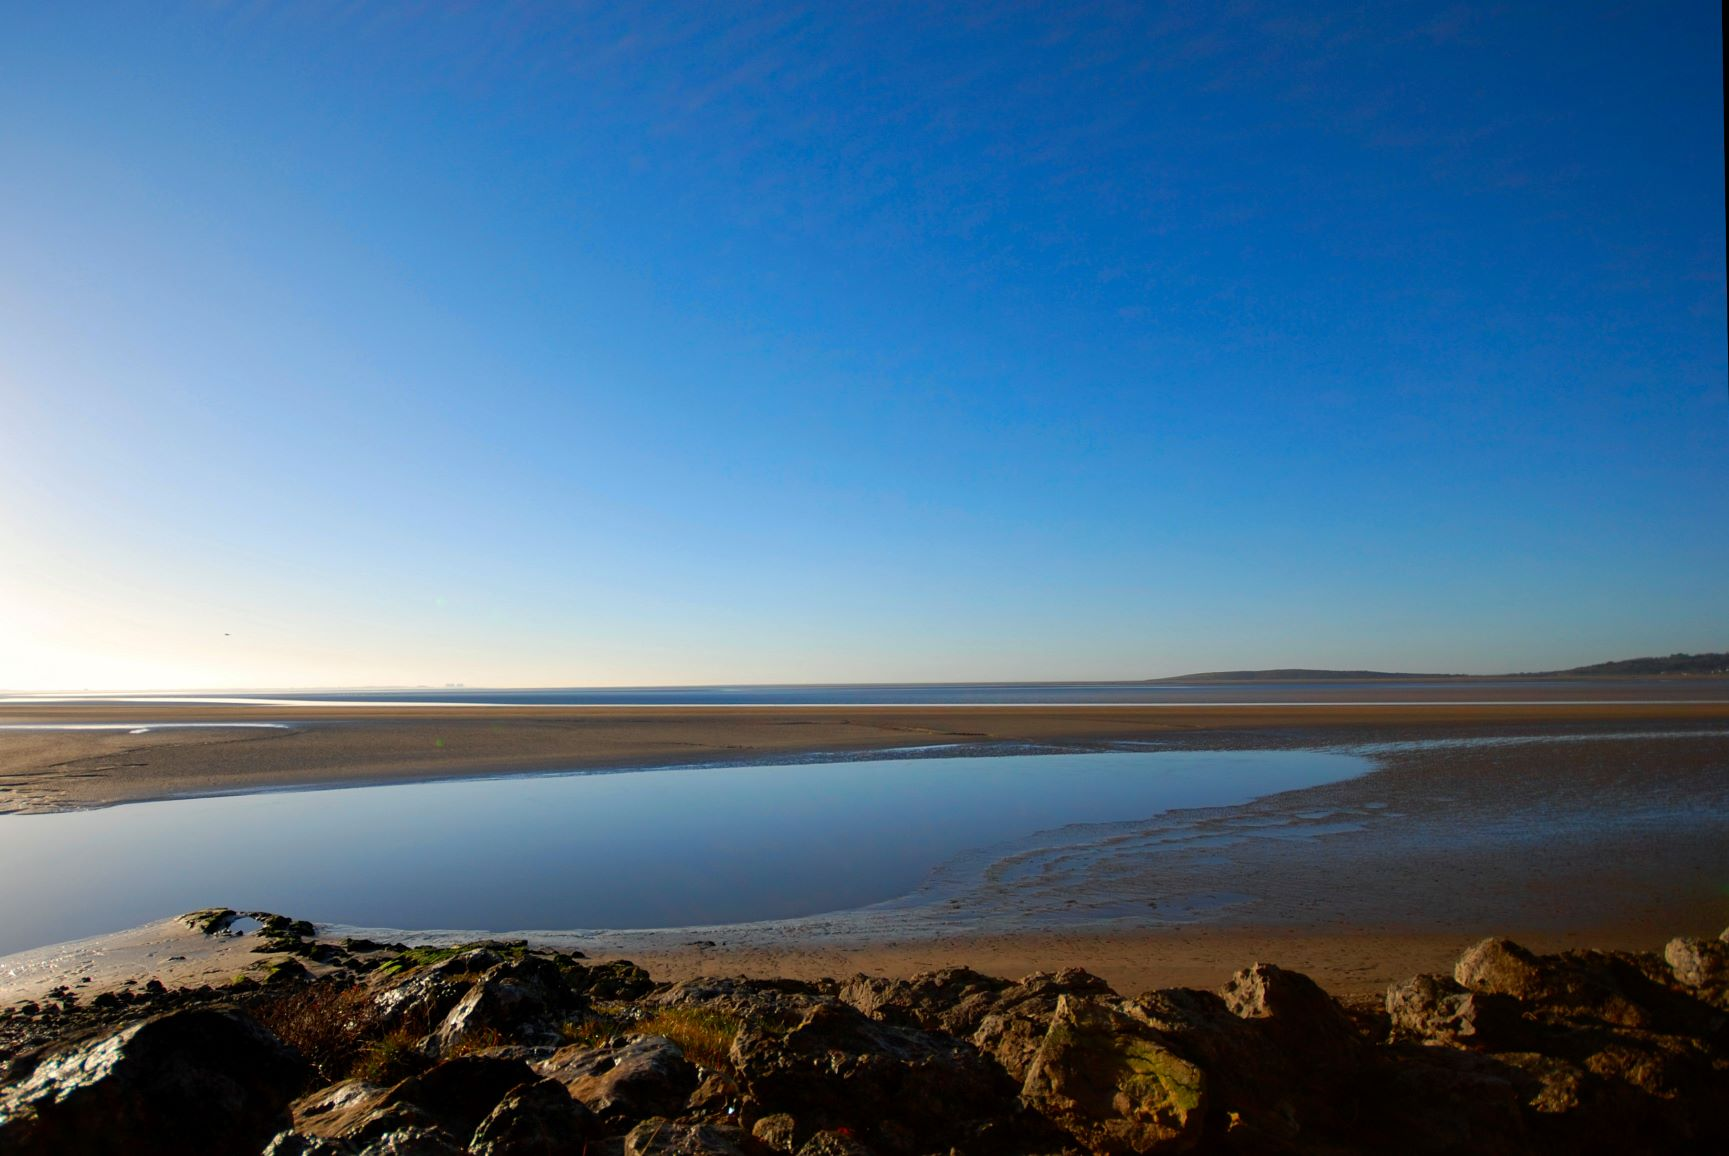 Stunning image looking accross Morecambe Bay